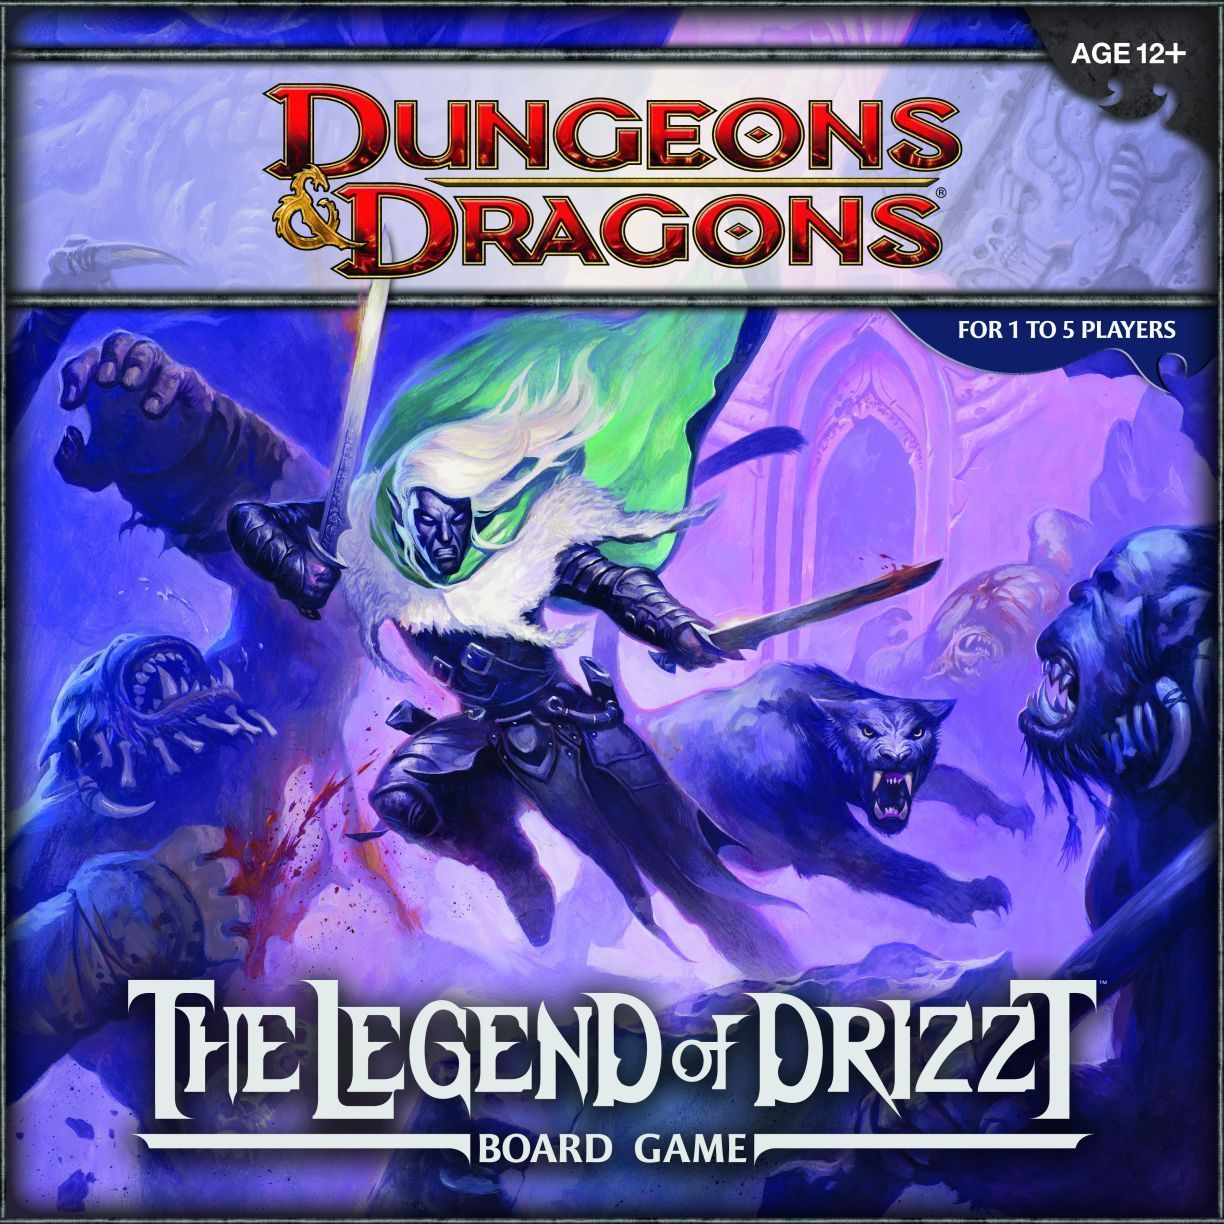 Main image for Dungeons & Dragons: The Legend of Drizzt Board Game